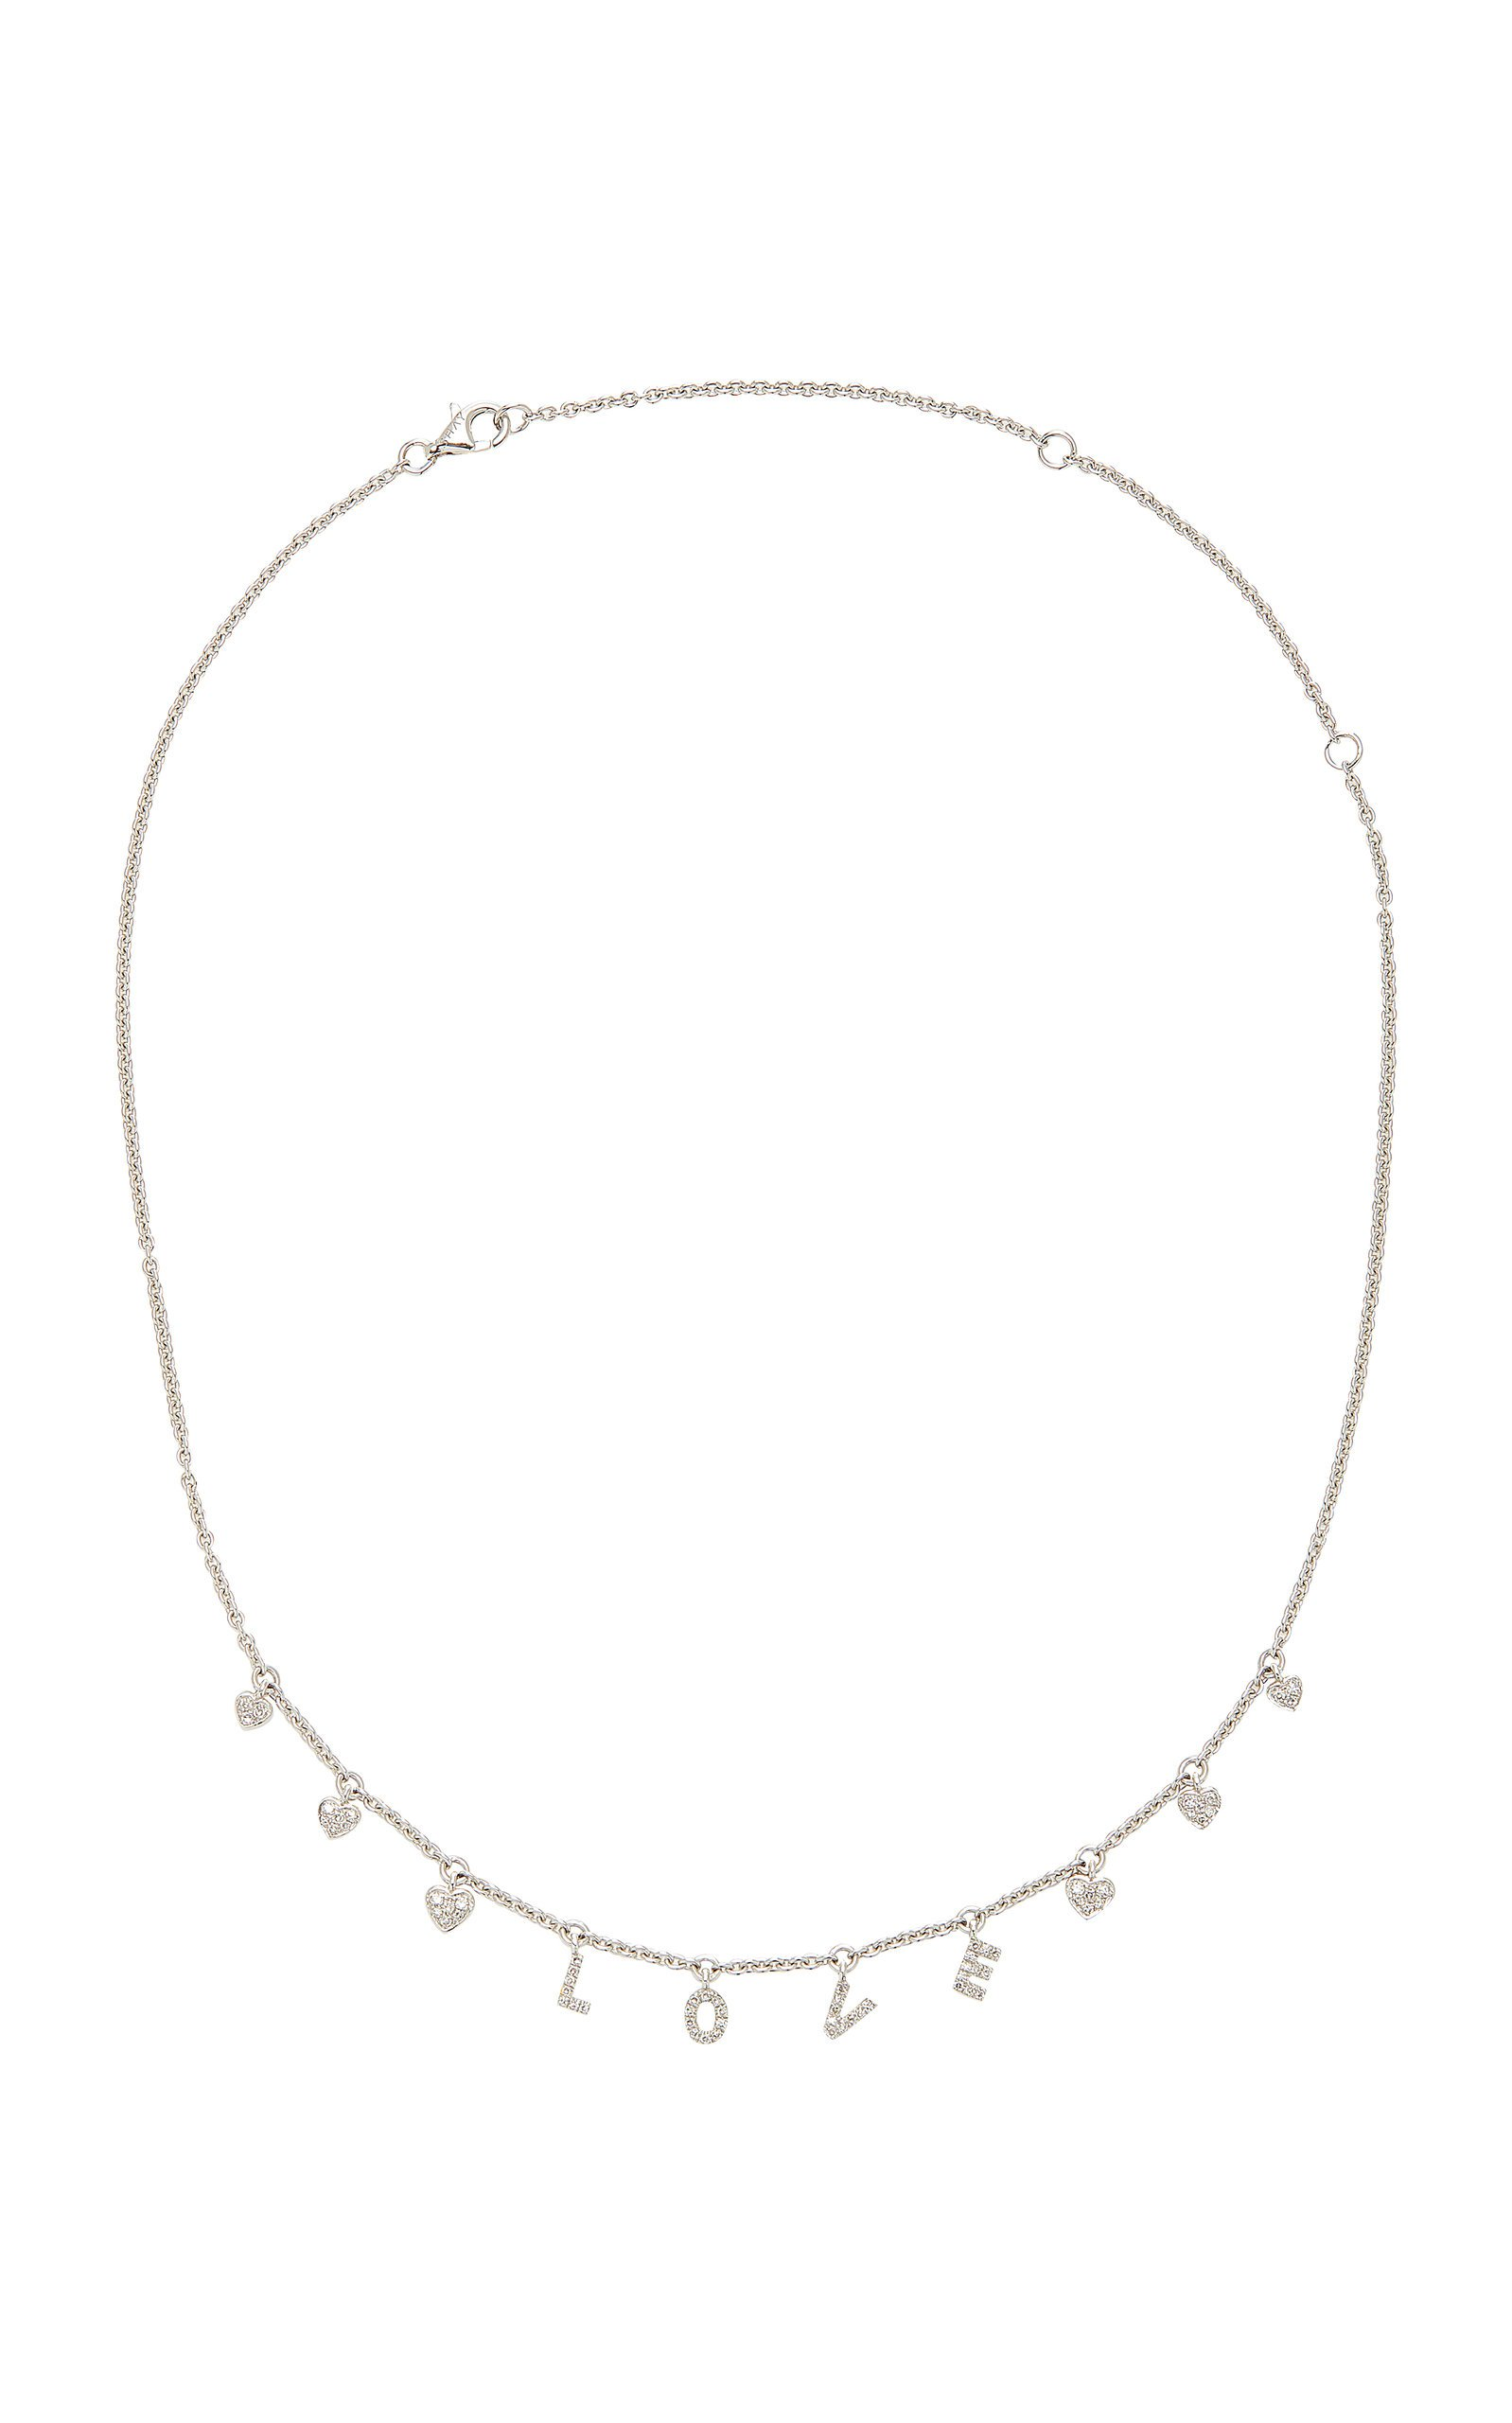 18K White Gold Diamond Necklace by Shay